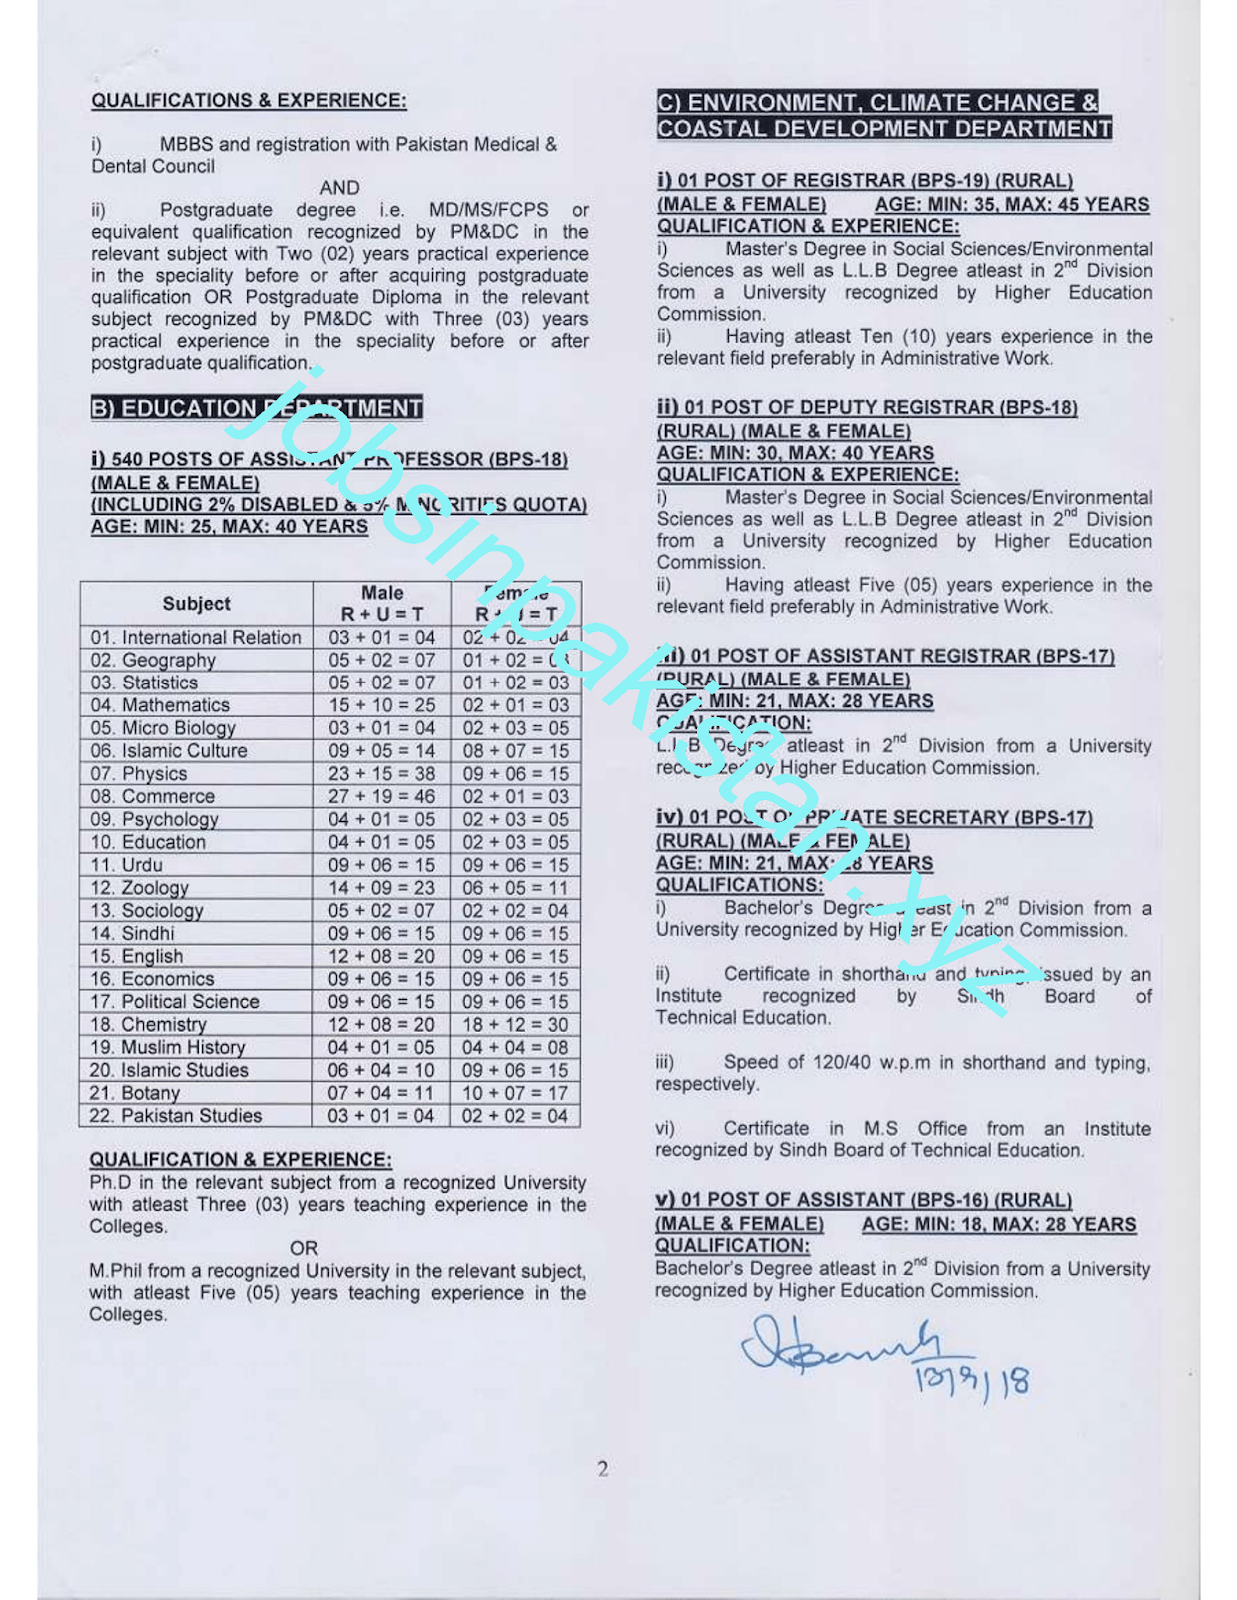 SPSC Advertisement No 08/2018 (Page No 2)